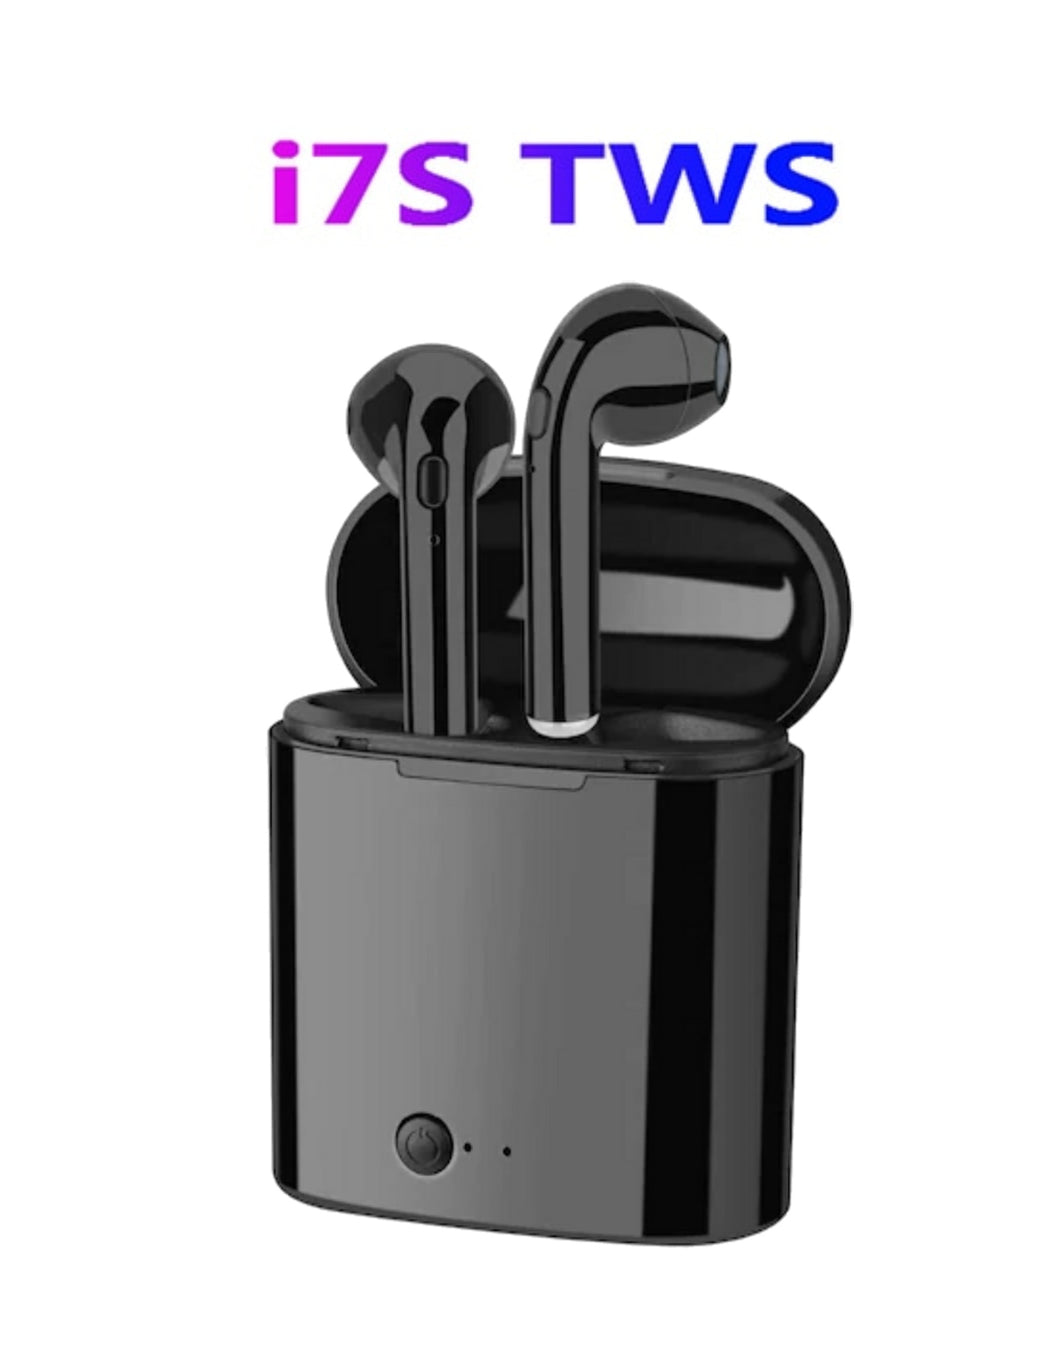 i7 TWS Wireless Earpiece Bluetooth 5.0 - Black Color